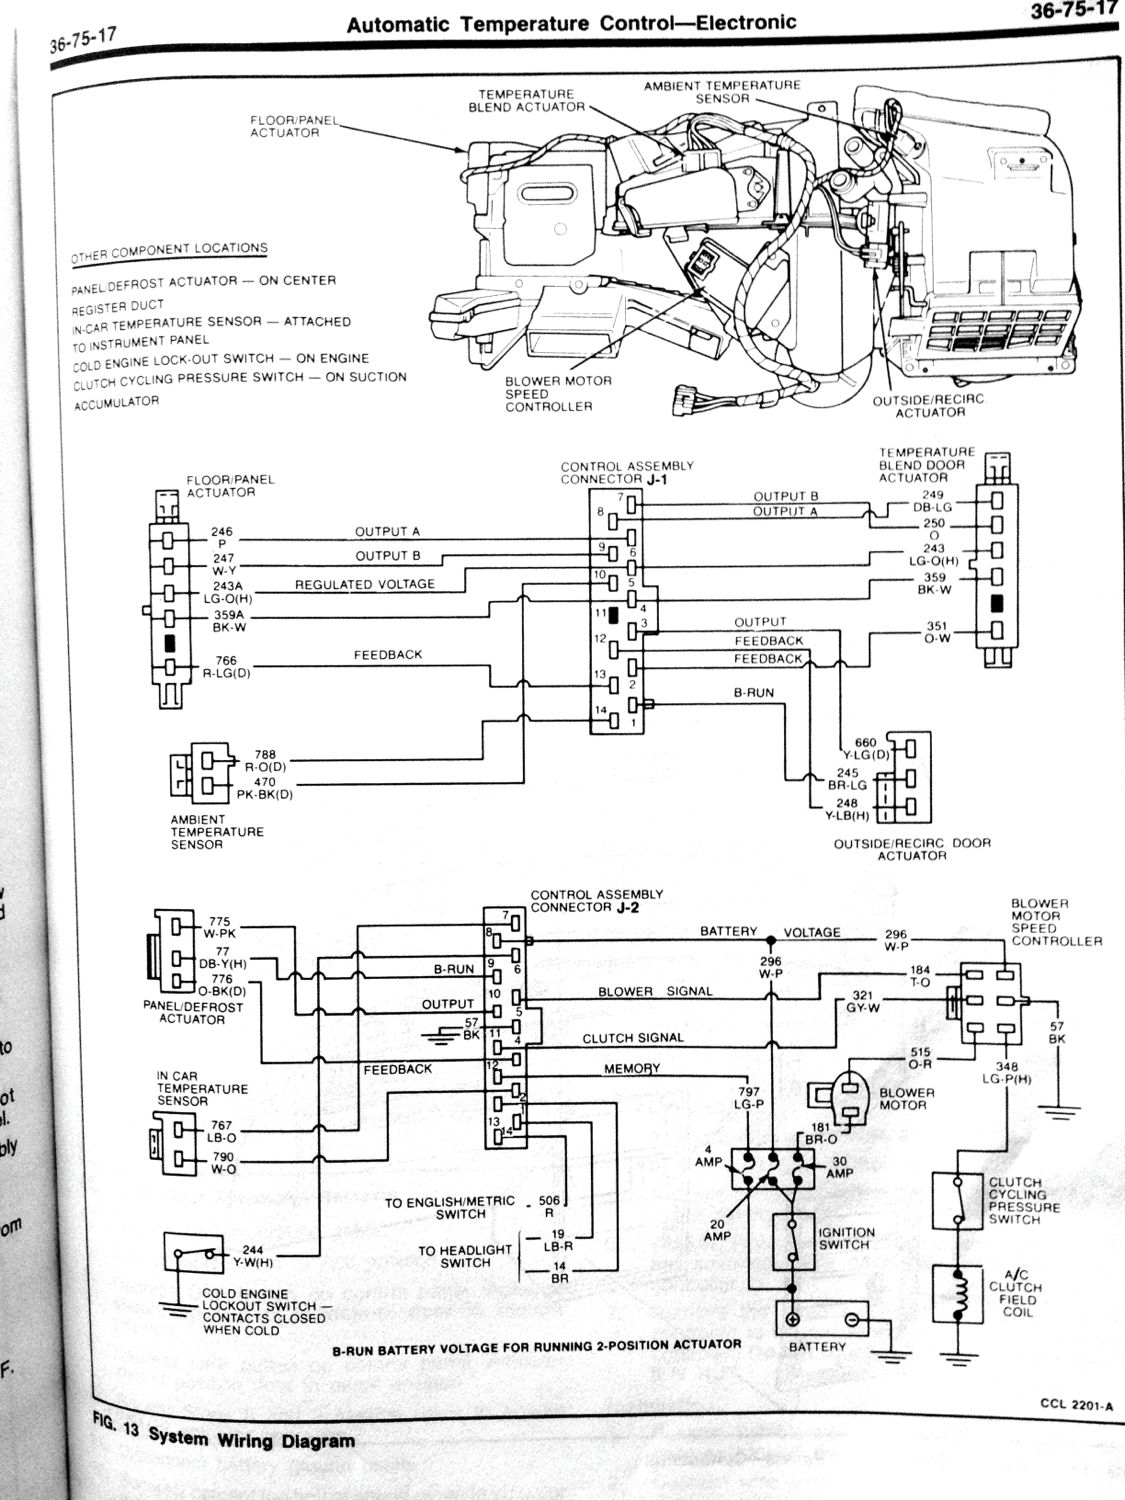 Mark 7 Wiring Diagram Data 1987 Lincoln Town Car Fuse Box 87 Vii Harness Schema Diagrams Color Coding